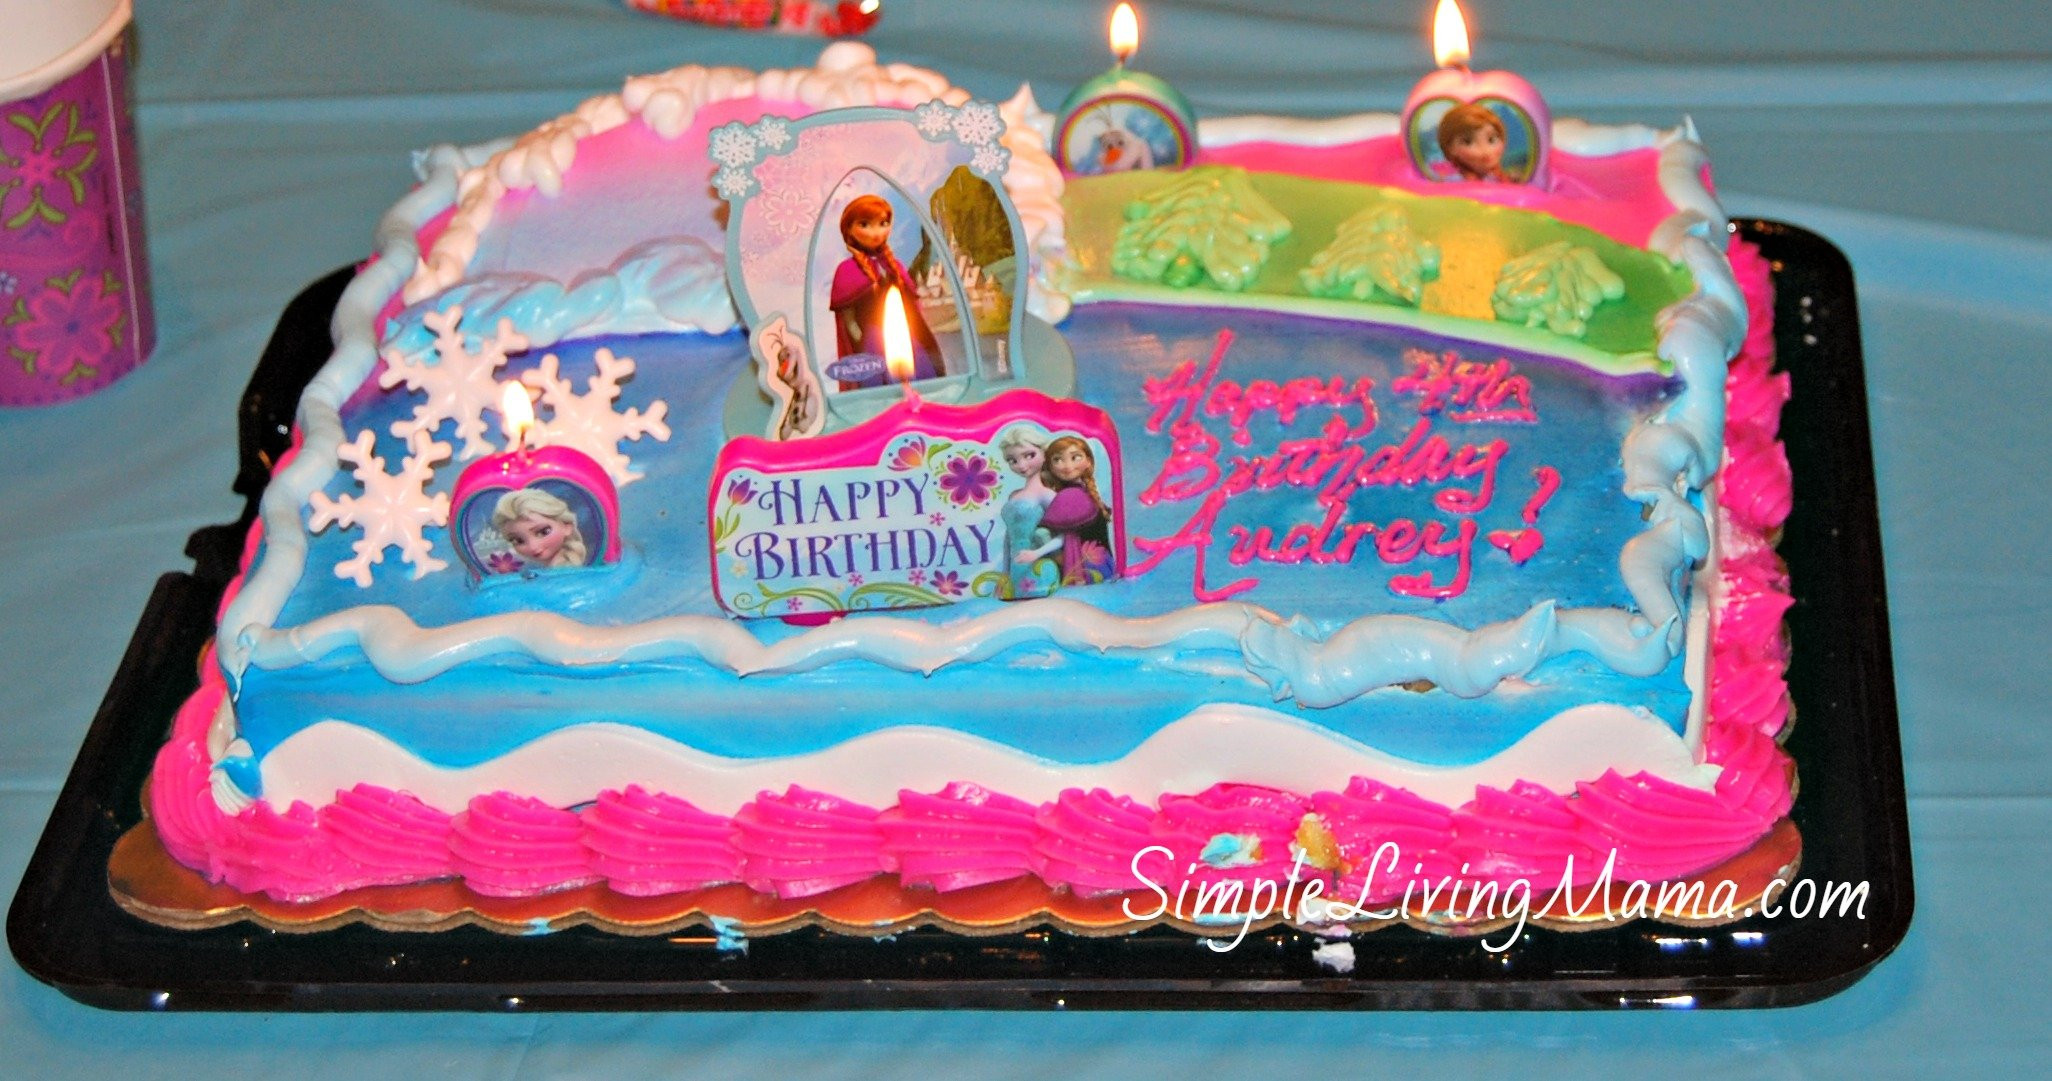 Best ideas about Frozen Birthday Cake Walmart . Save or Pin Our Frozen Birthday Party Simple Living Mama Now.